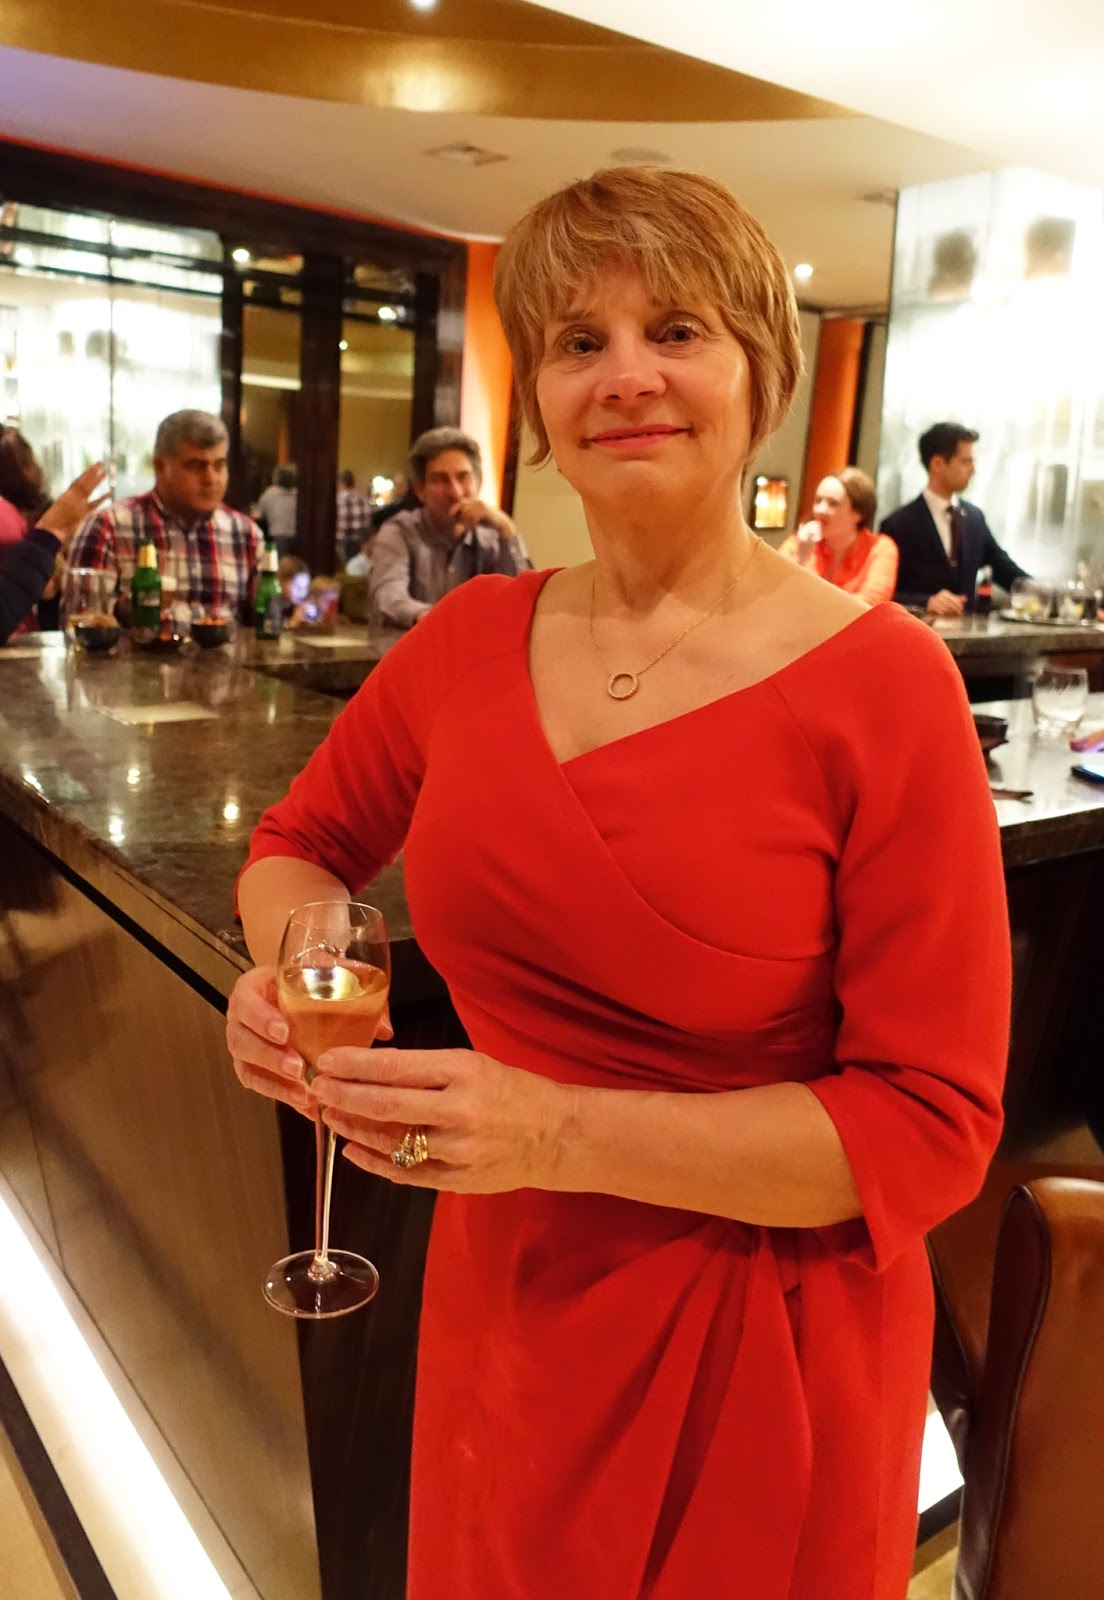 Image showing a woman in her 50s in a red dress standing by the bar of a luxurious London hotel